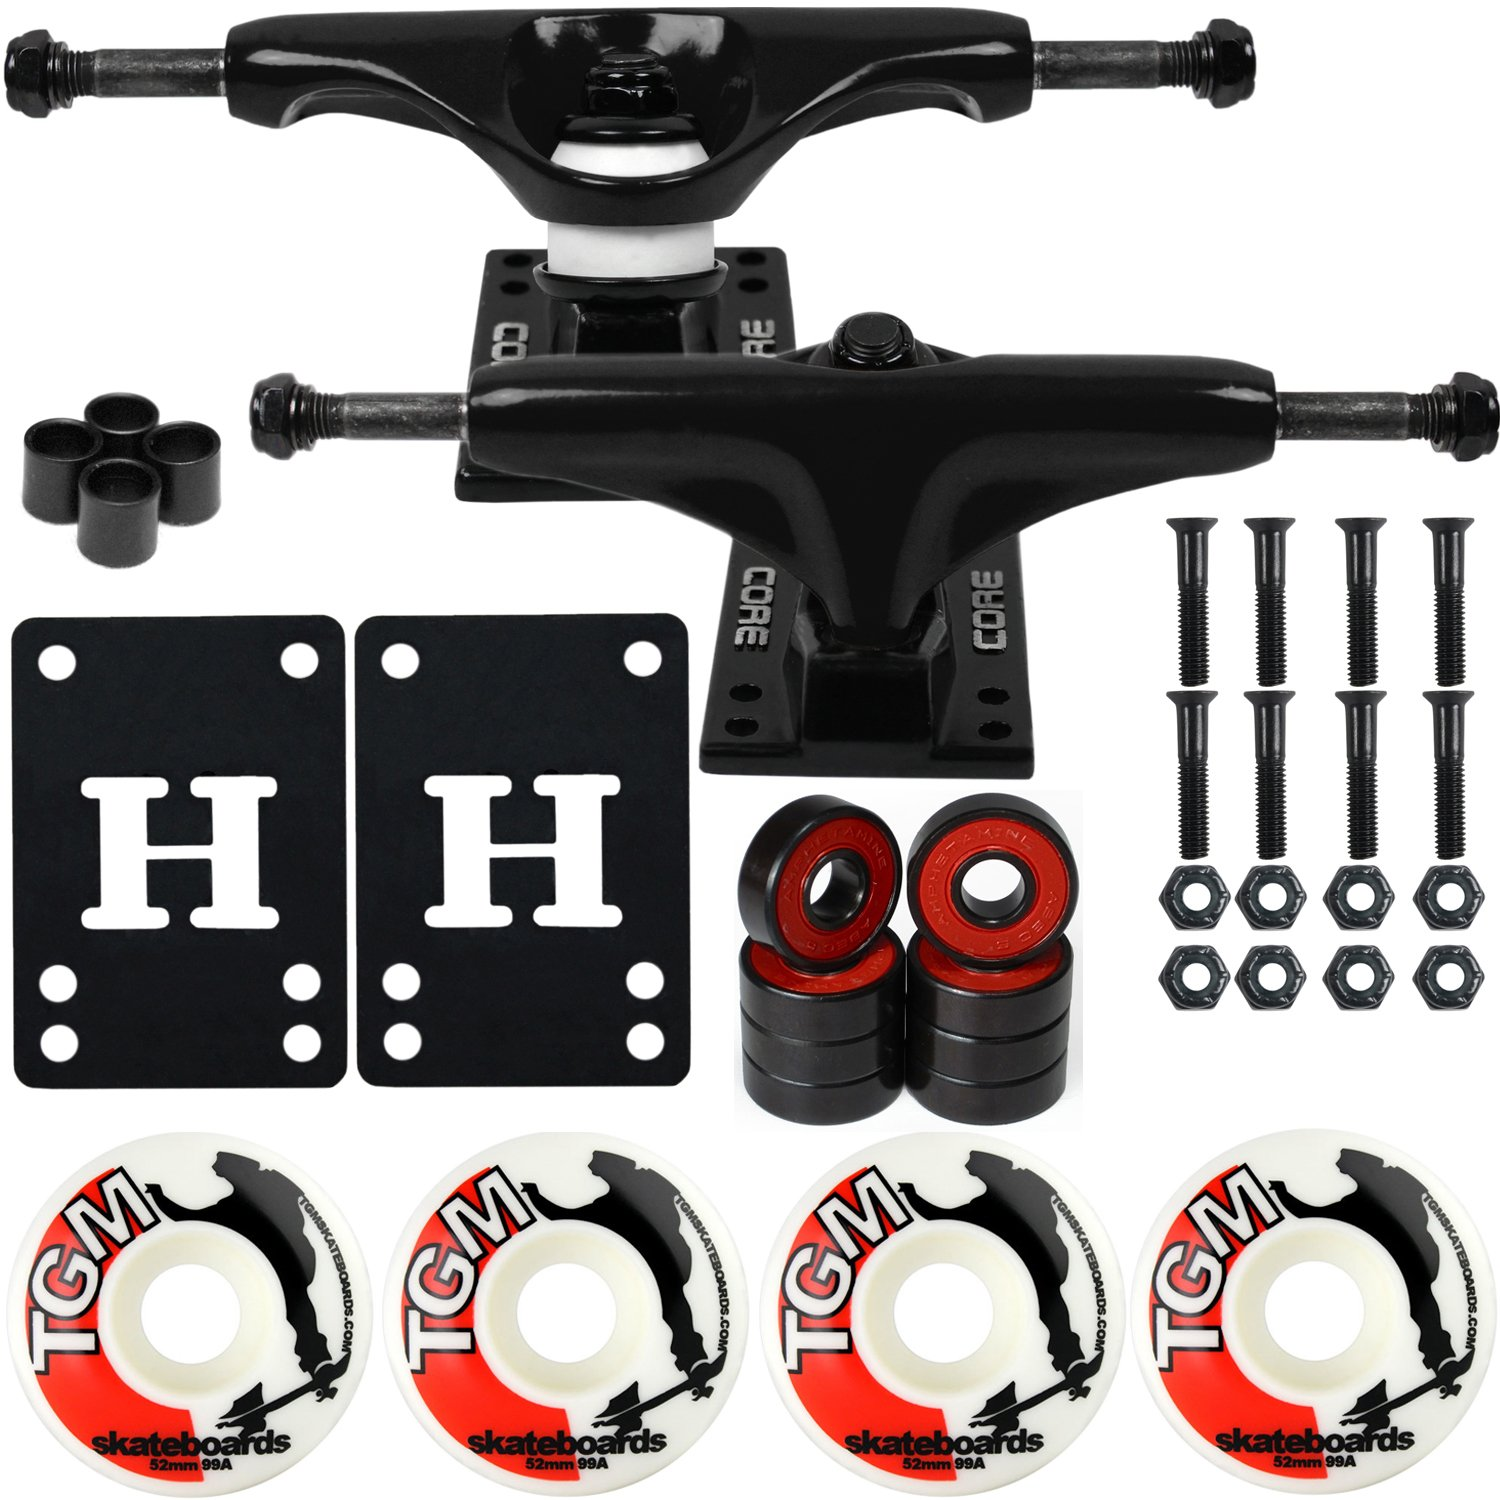 CORE Skateboard Package 5.0'' Trucks 52mm with White Wheels + Components (Black Hanger/Black Base) by CORE